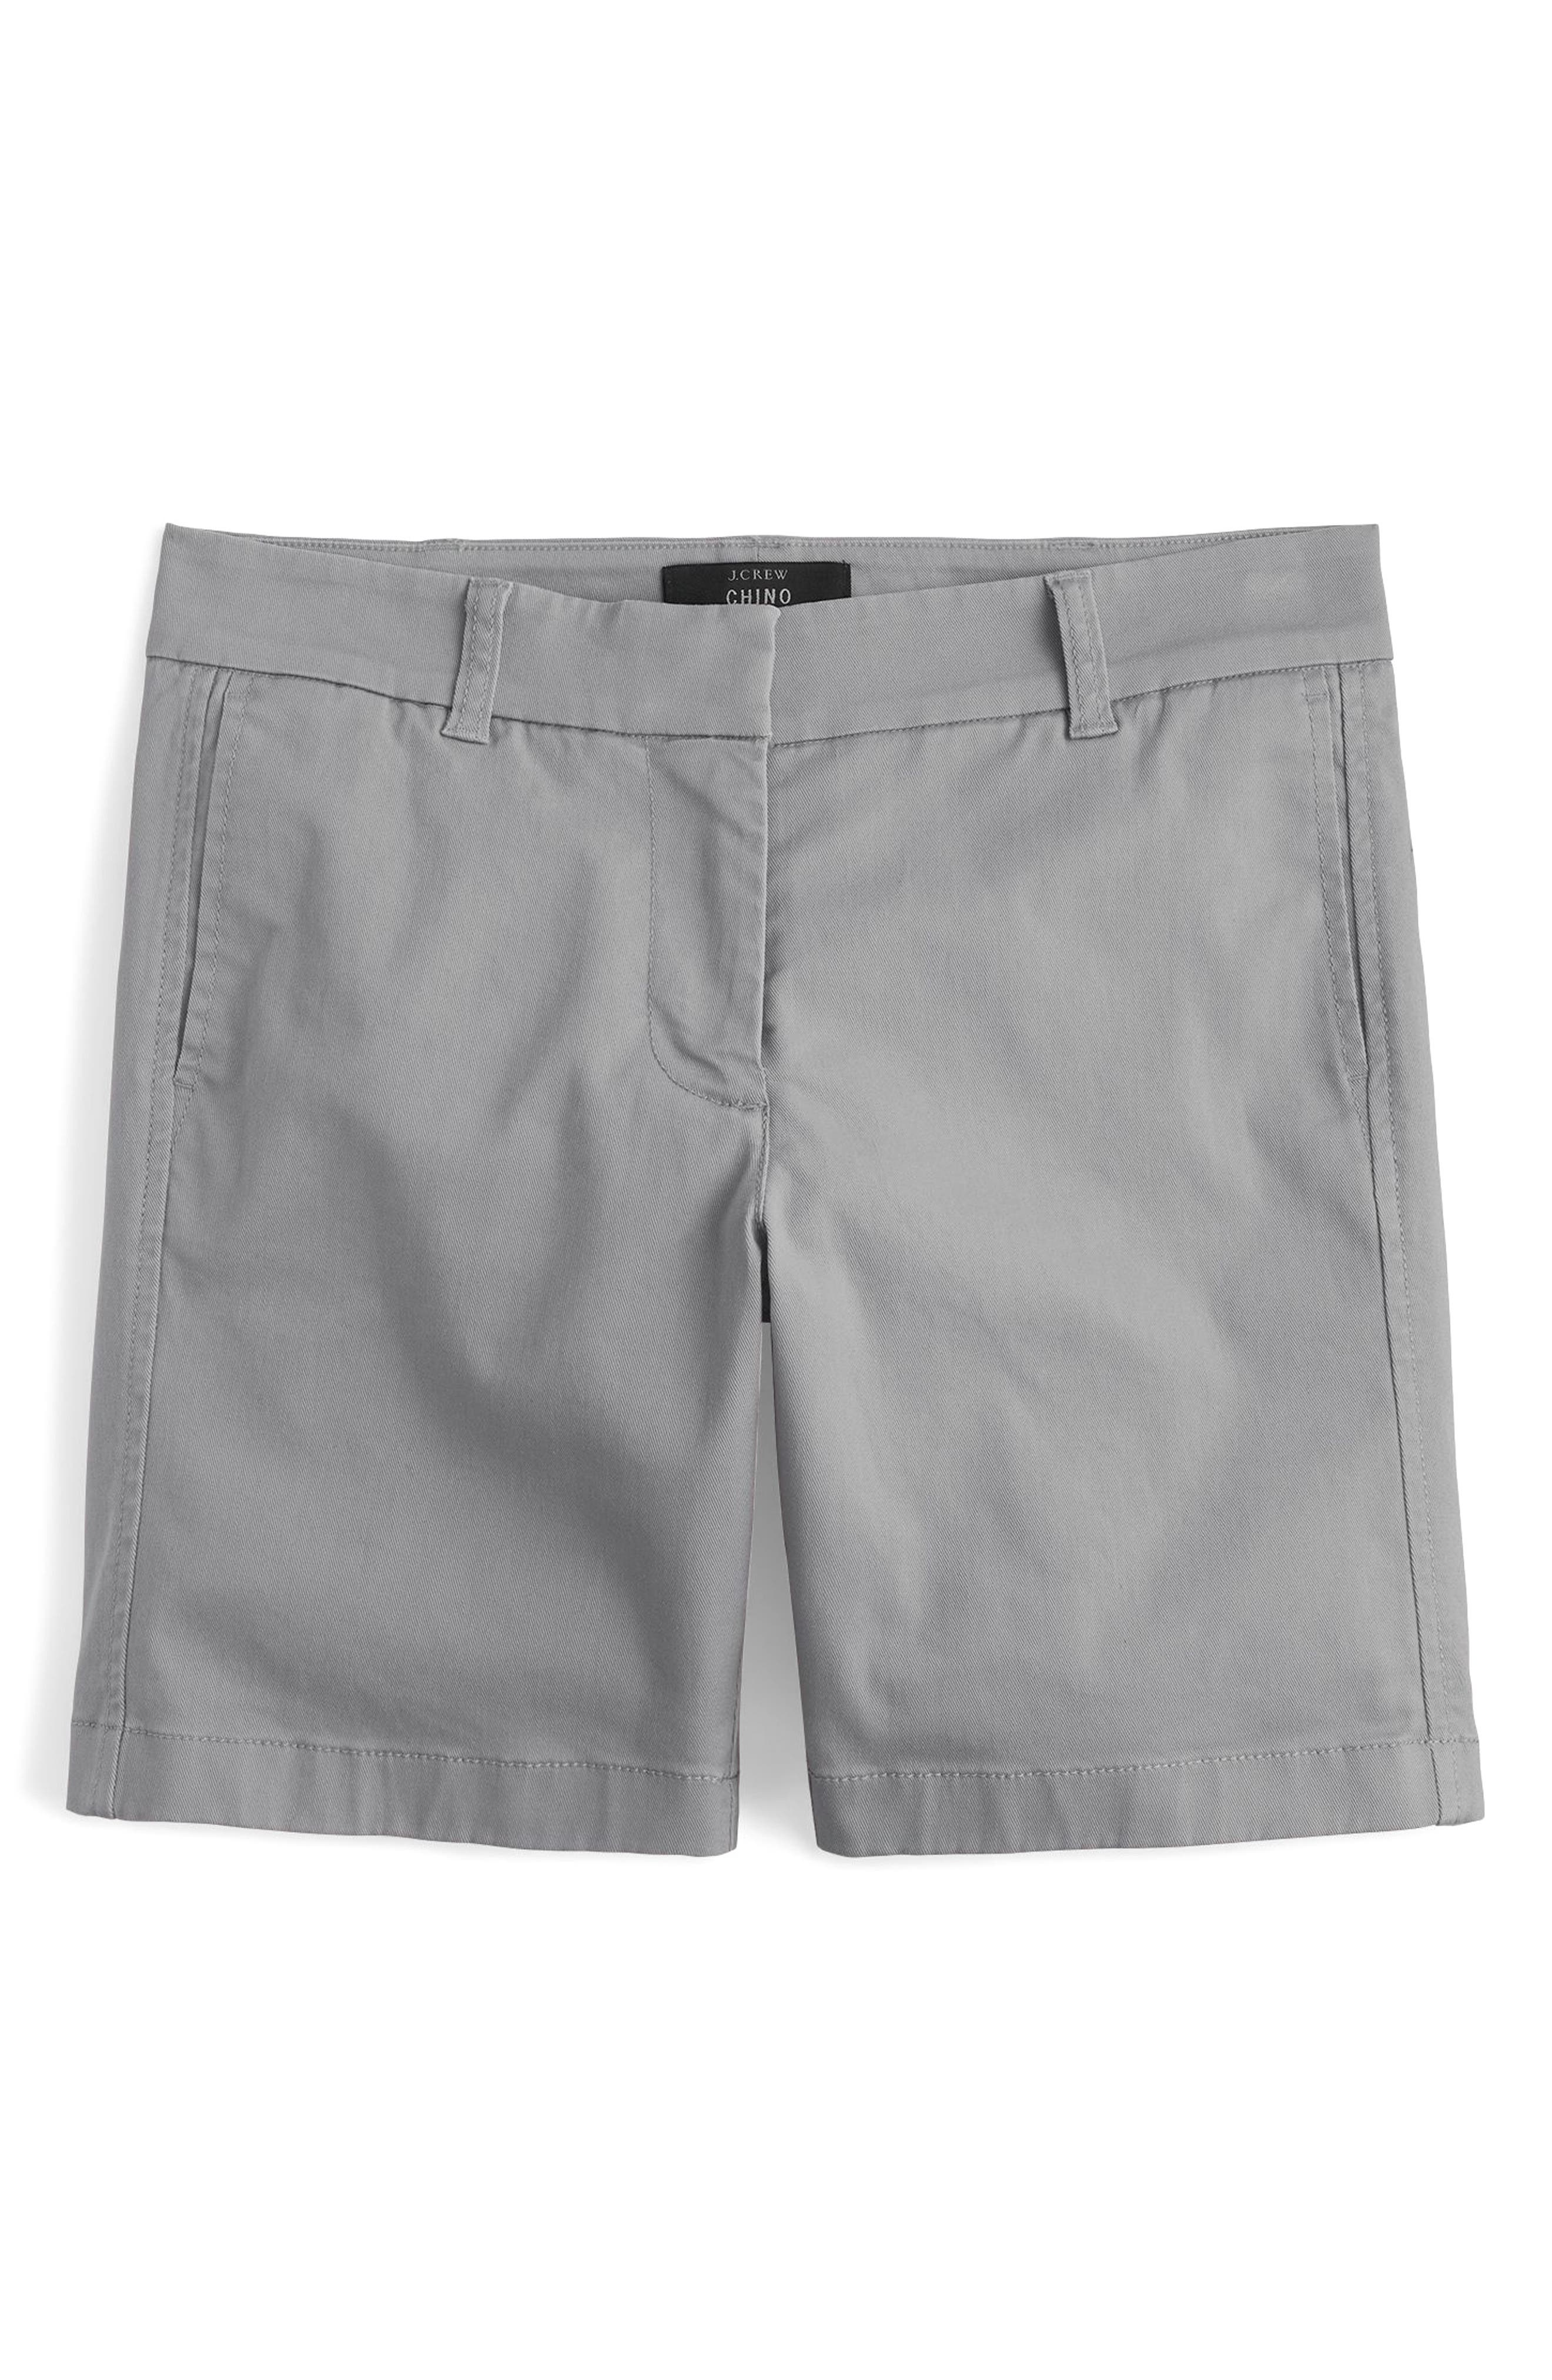 Stretch Cotton Chino Shorts,                             Alternate thumbnail 3, color,                             020